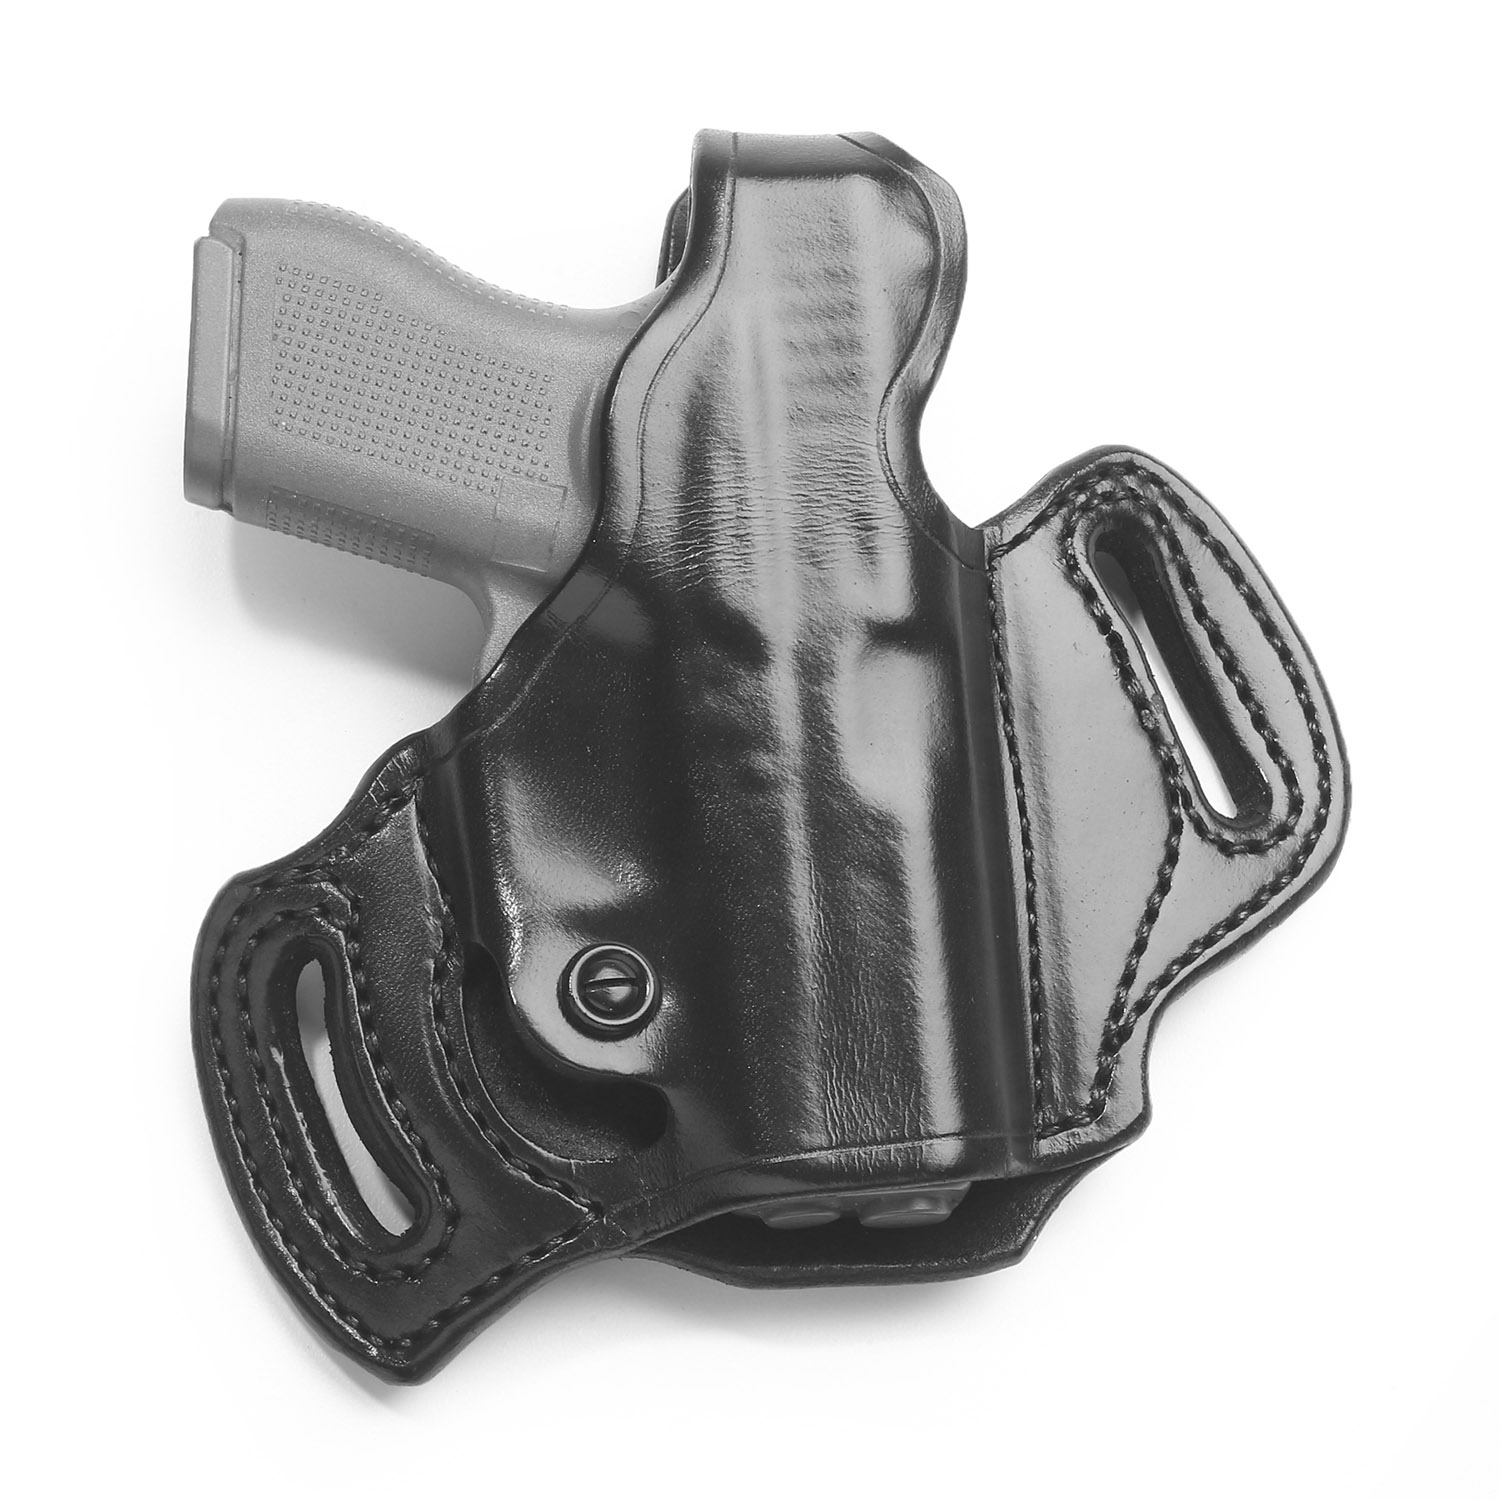 Aker Flatsider Belt Slide Holster with Thumb Break